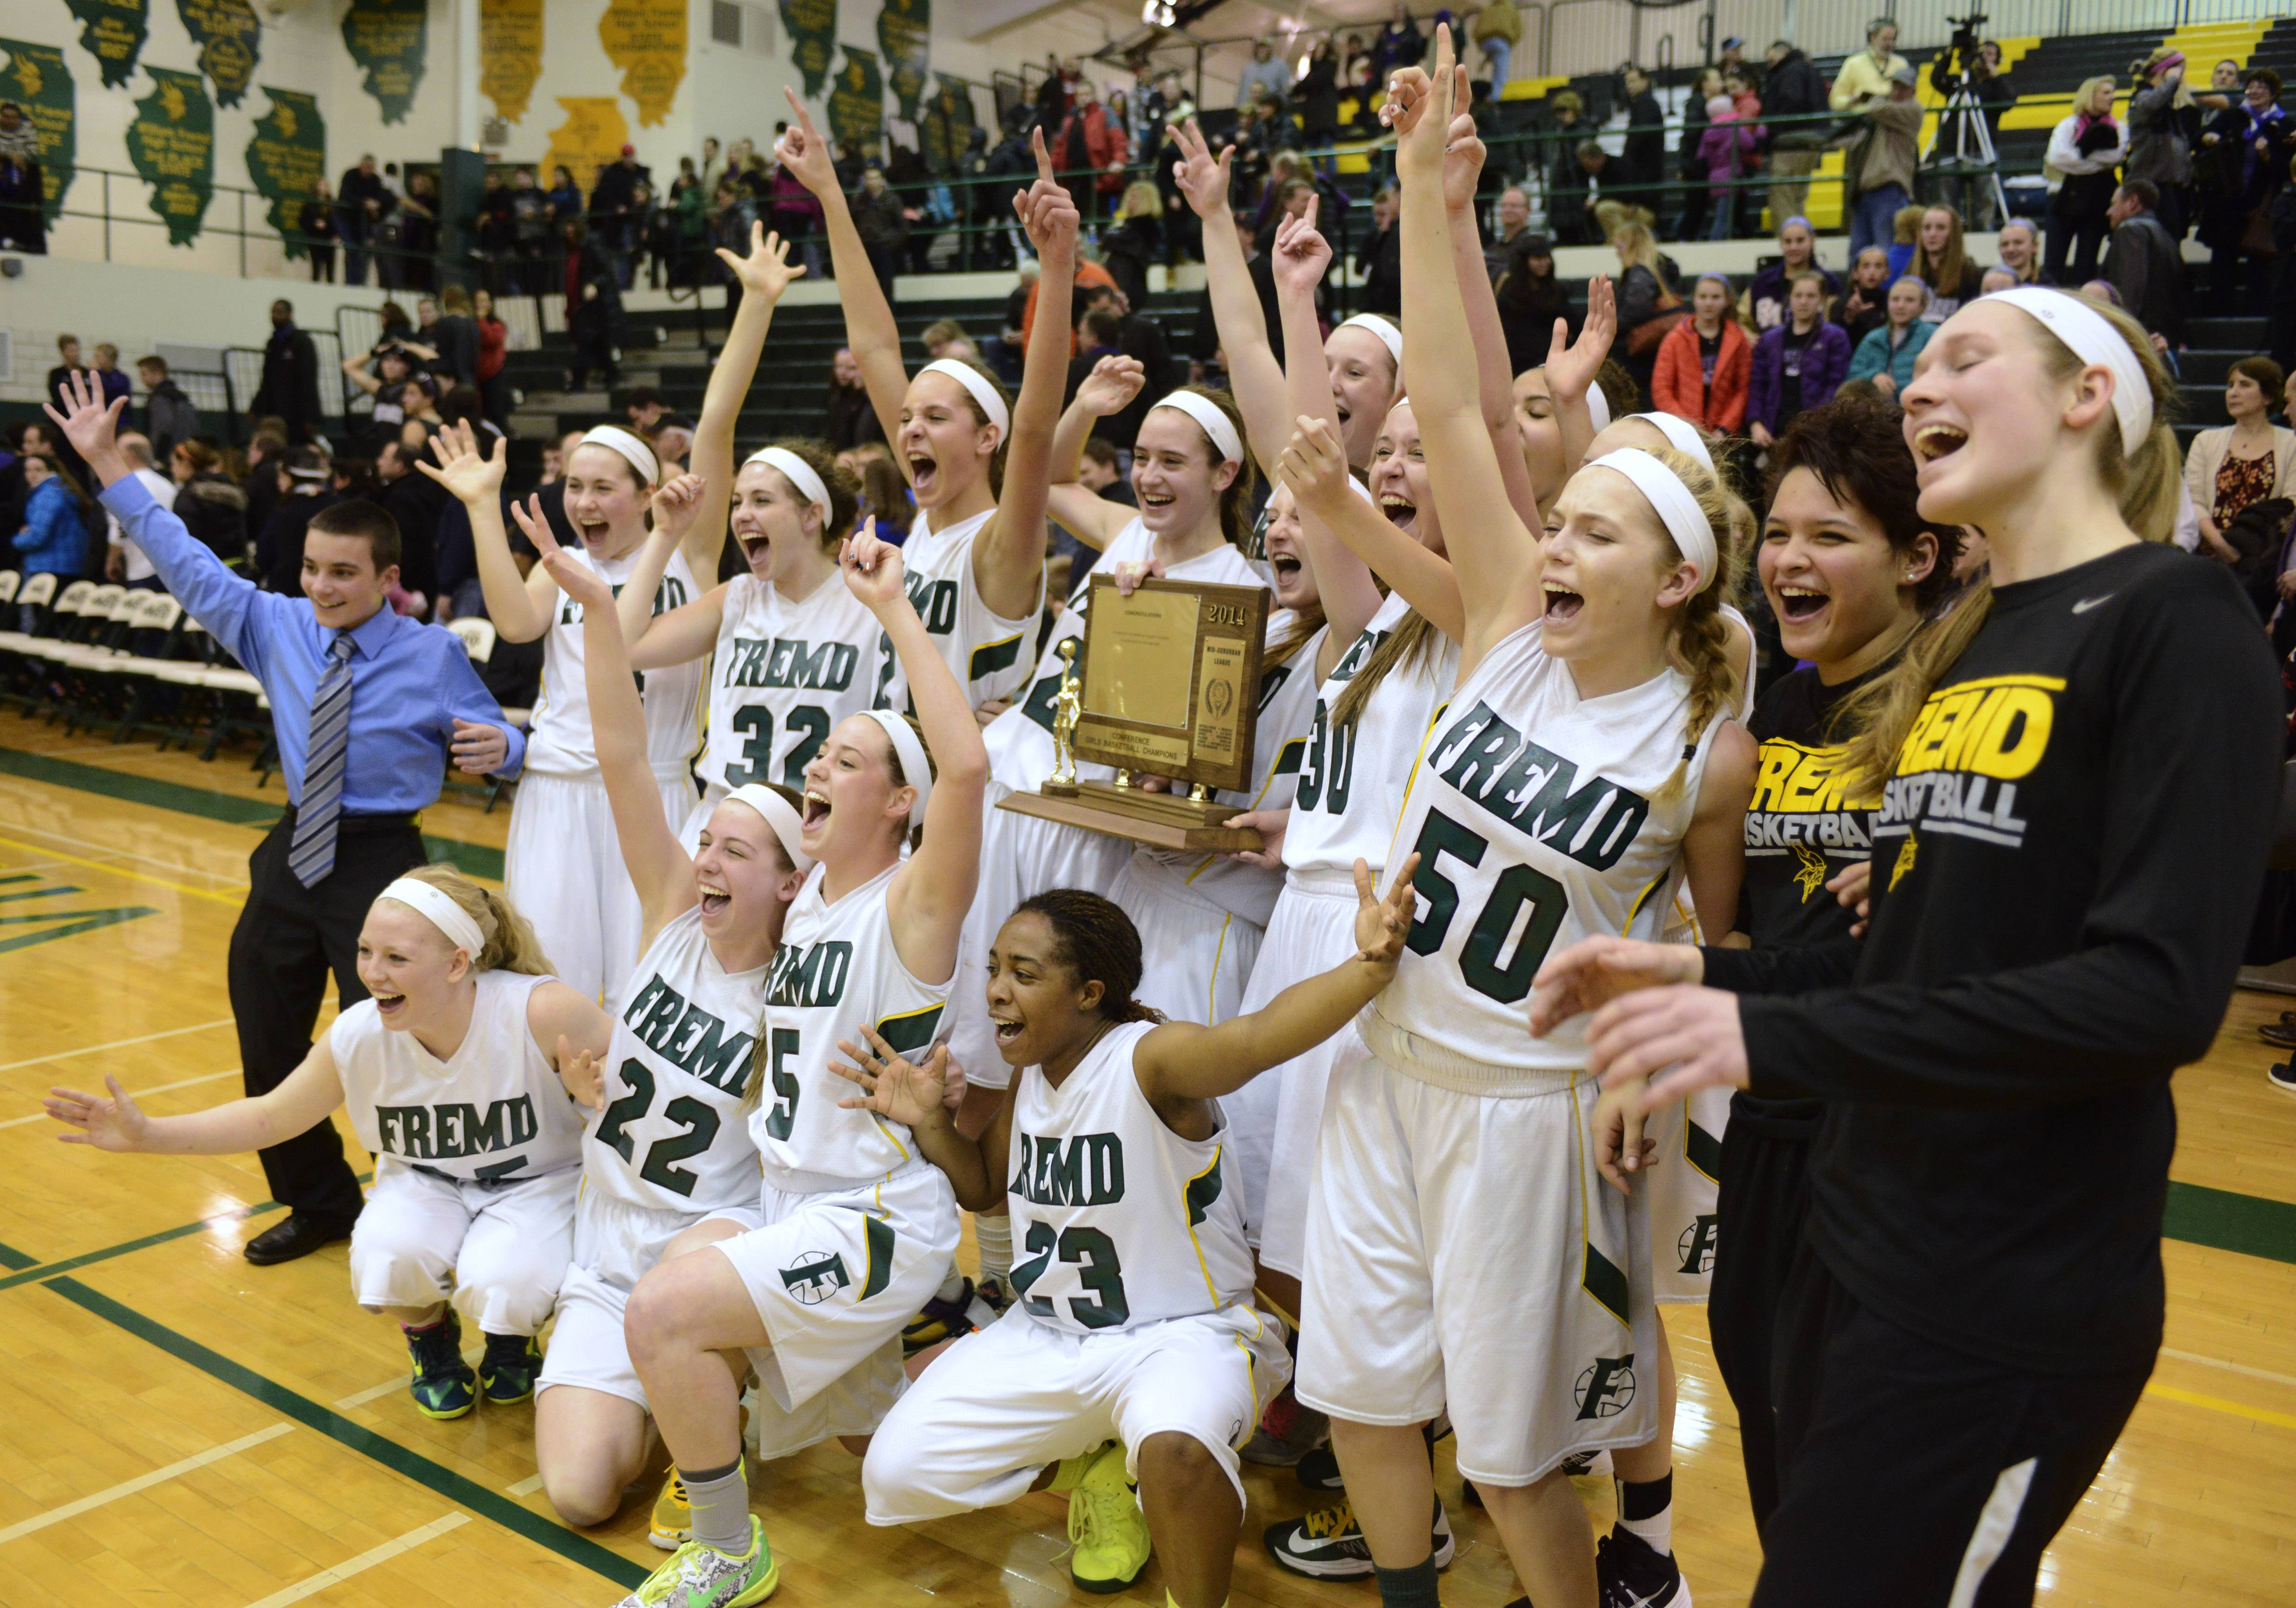 Images: Fremd vs. Rolling Meadows girls basketball